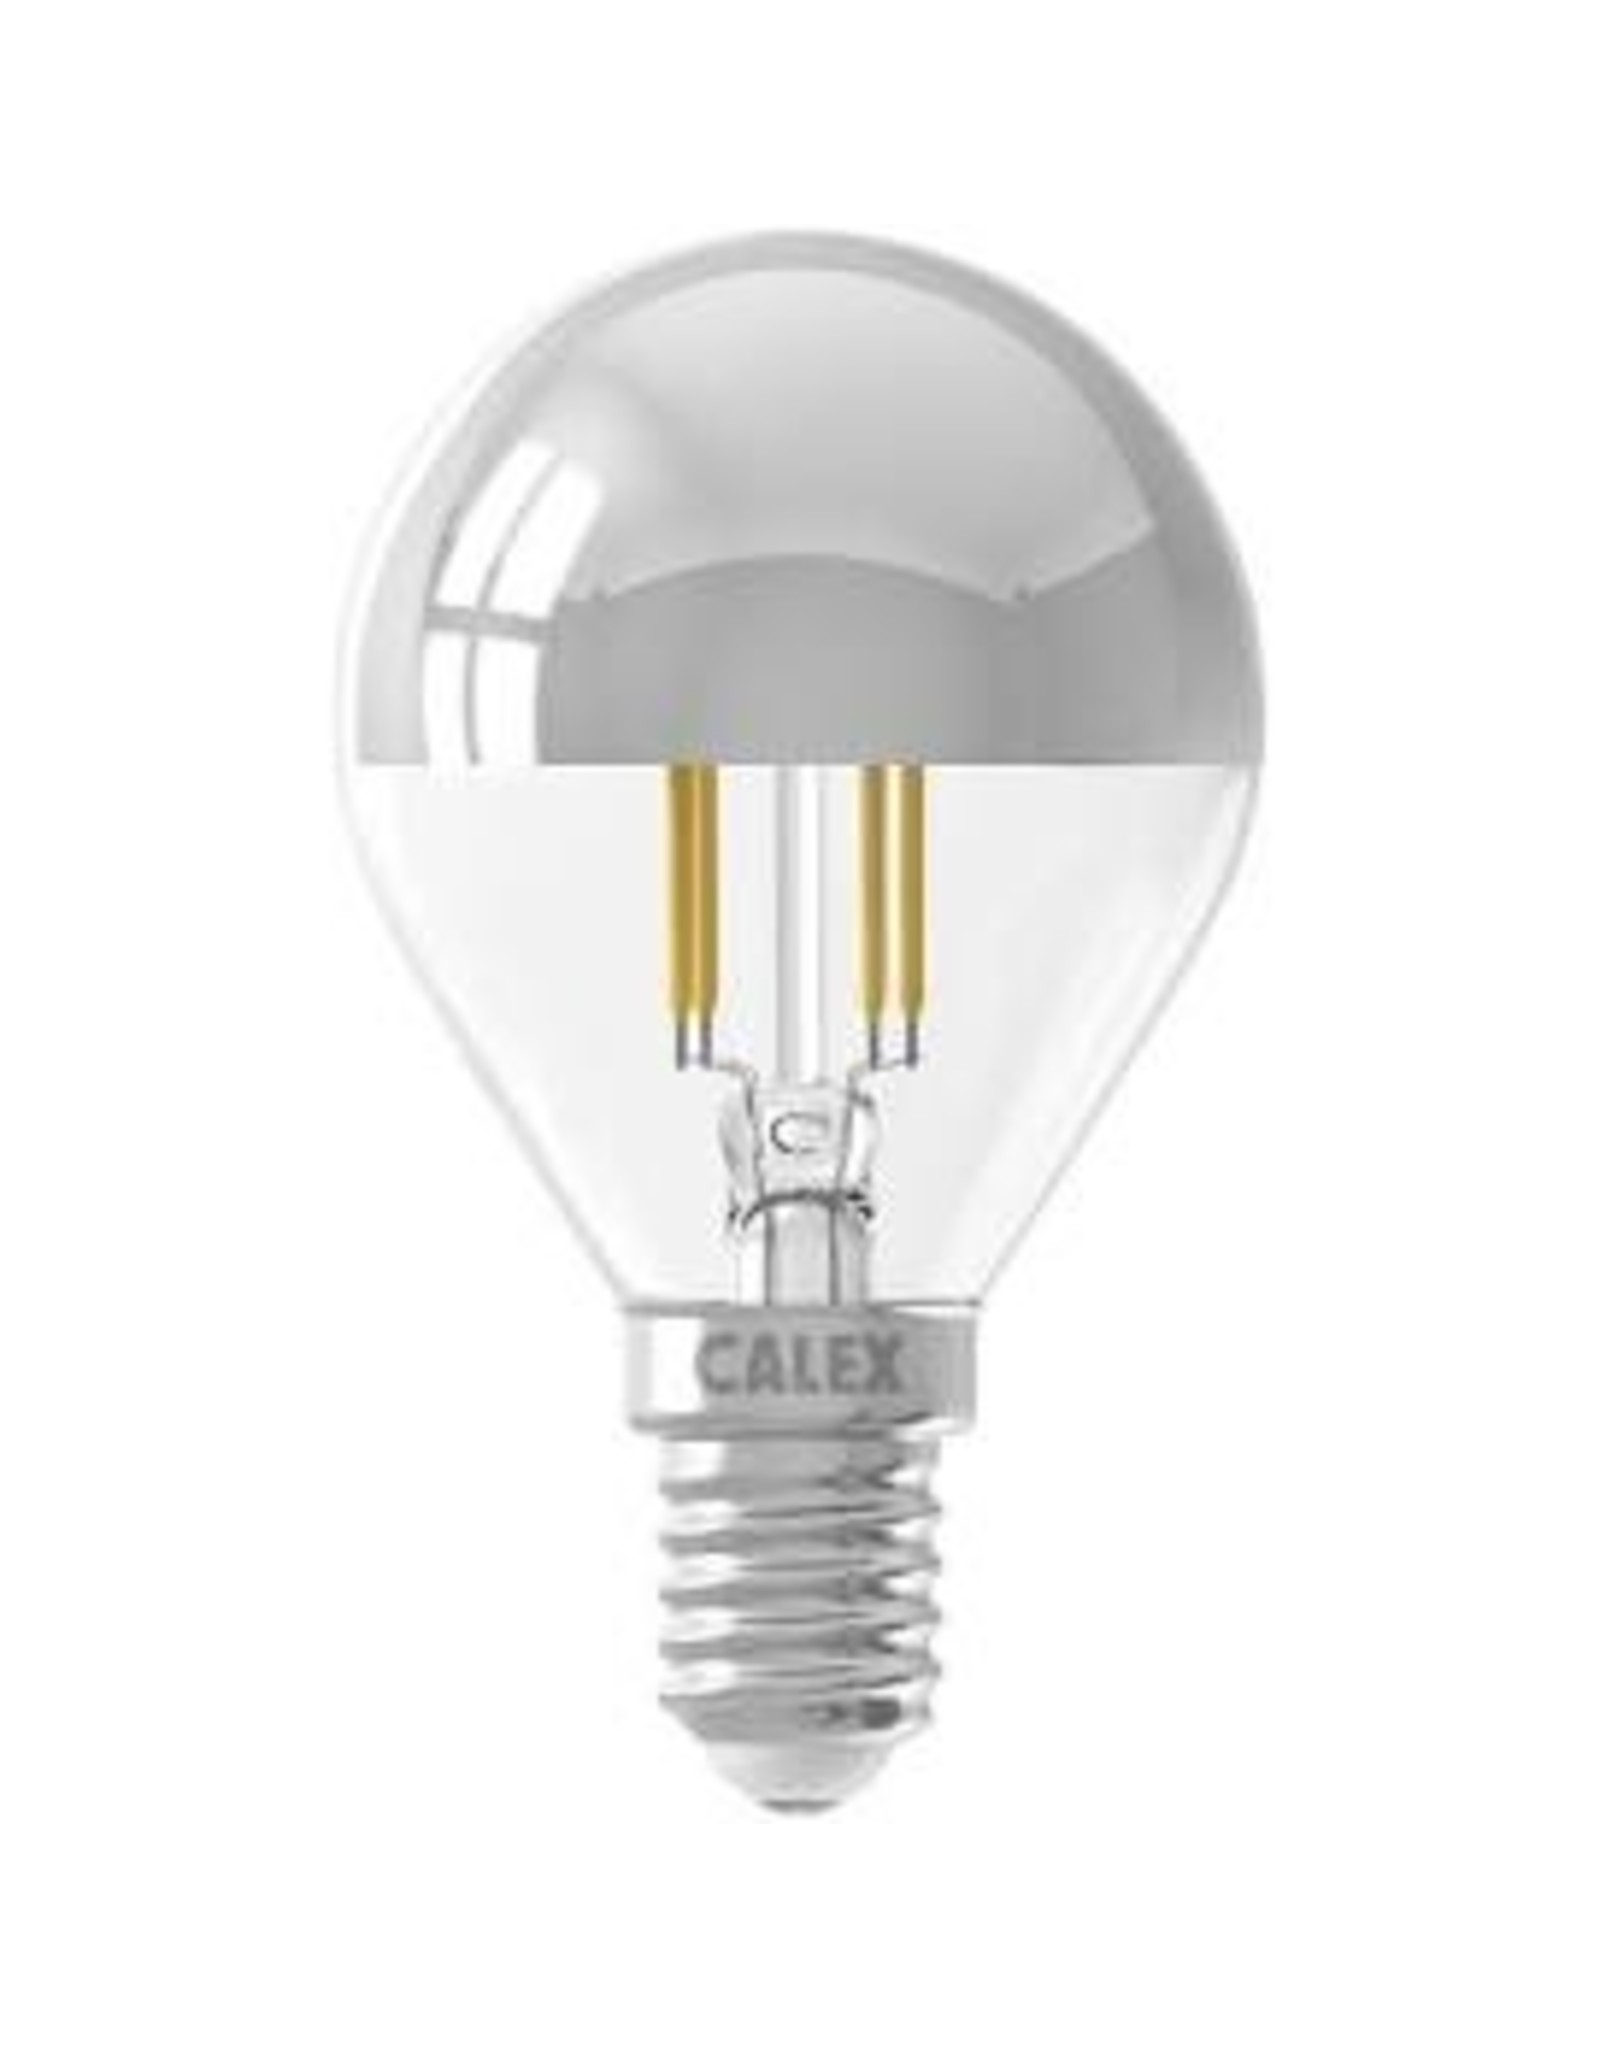 Calex LED Full Glass Top-mirror Filament Ball-lamp 220-240V 4W 310lm E14 P45, Chrome 2700K CRI80 Dimmable, energy label A+